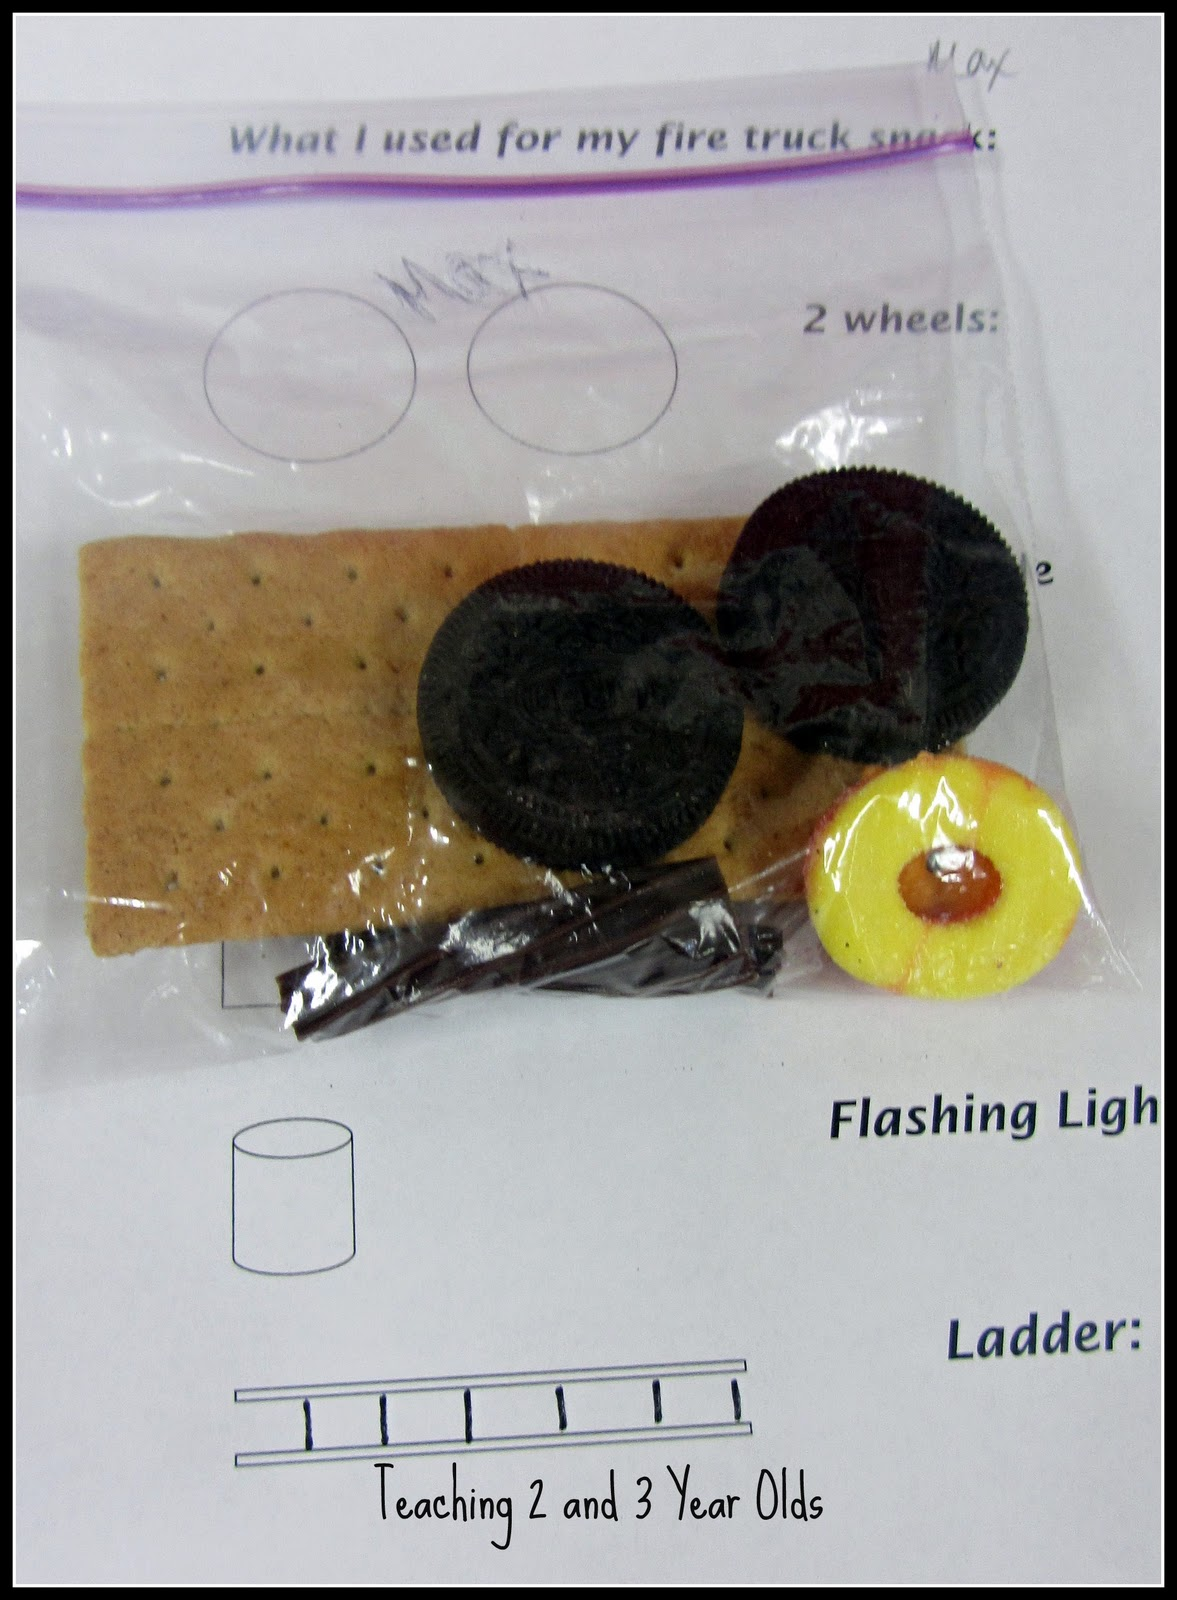 Fire Truck Snack for Preschool http://teaching2and3yearolds.blogspot.com/2012/02/fire-truck-snack.html